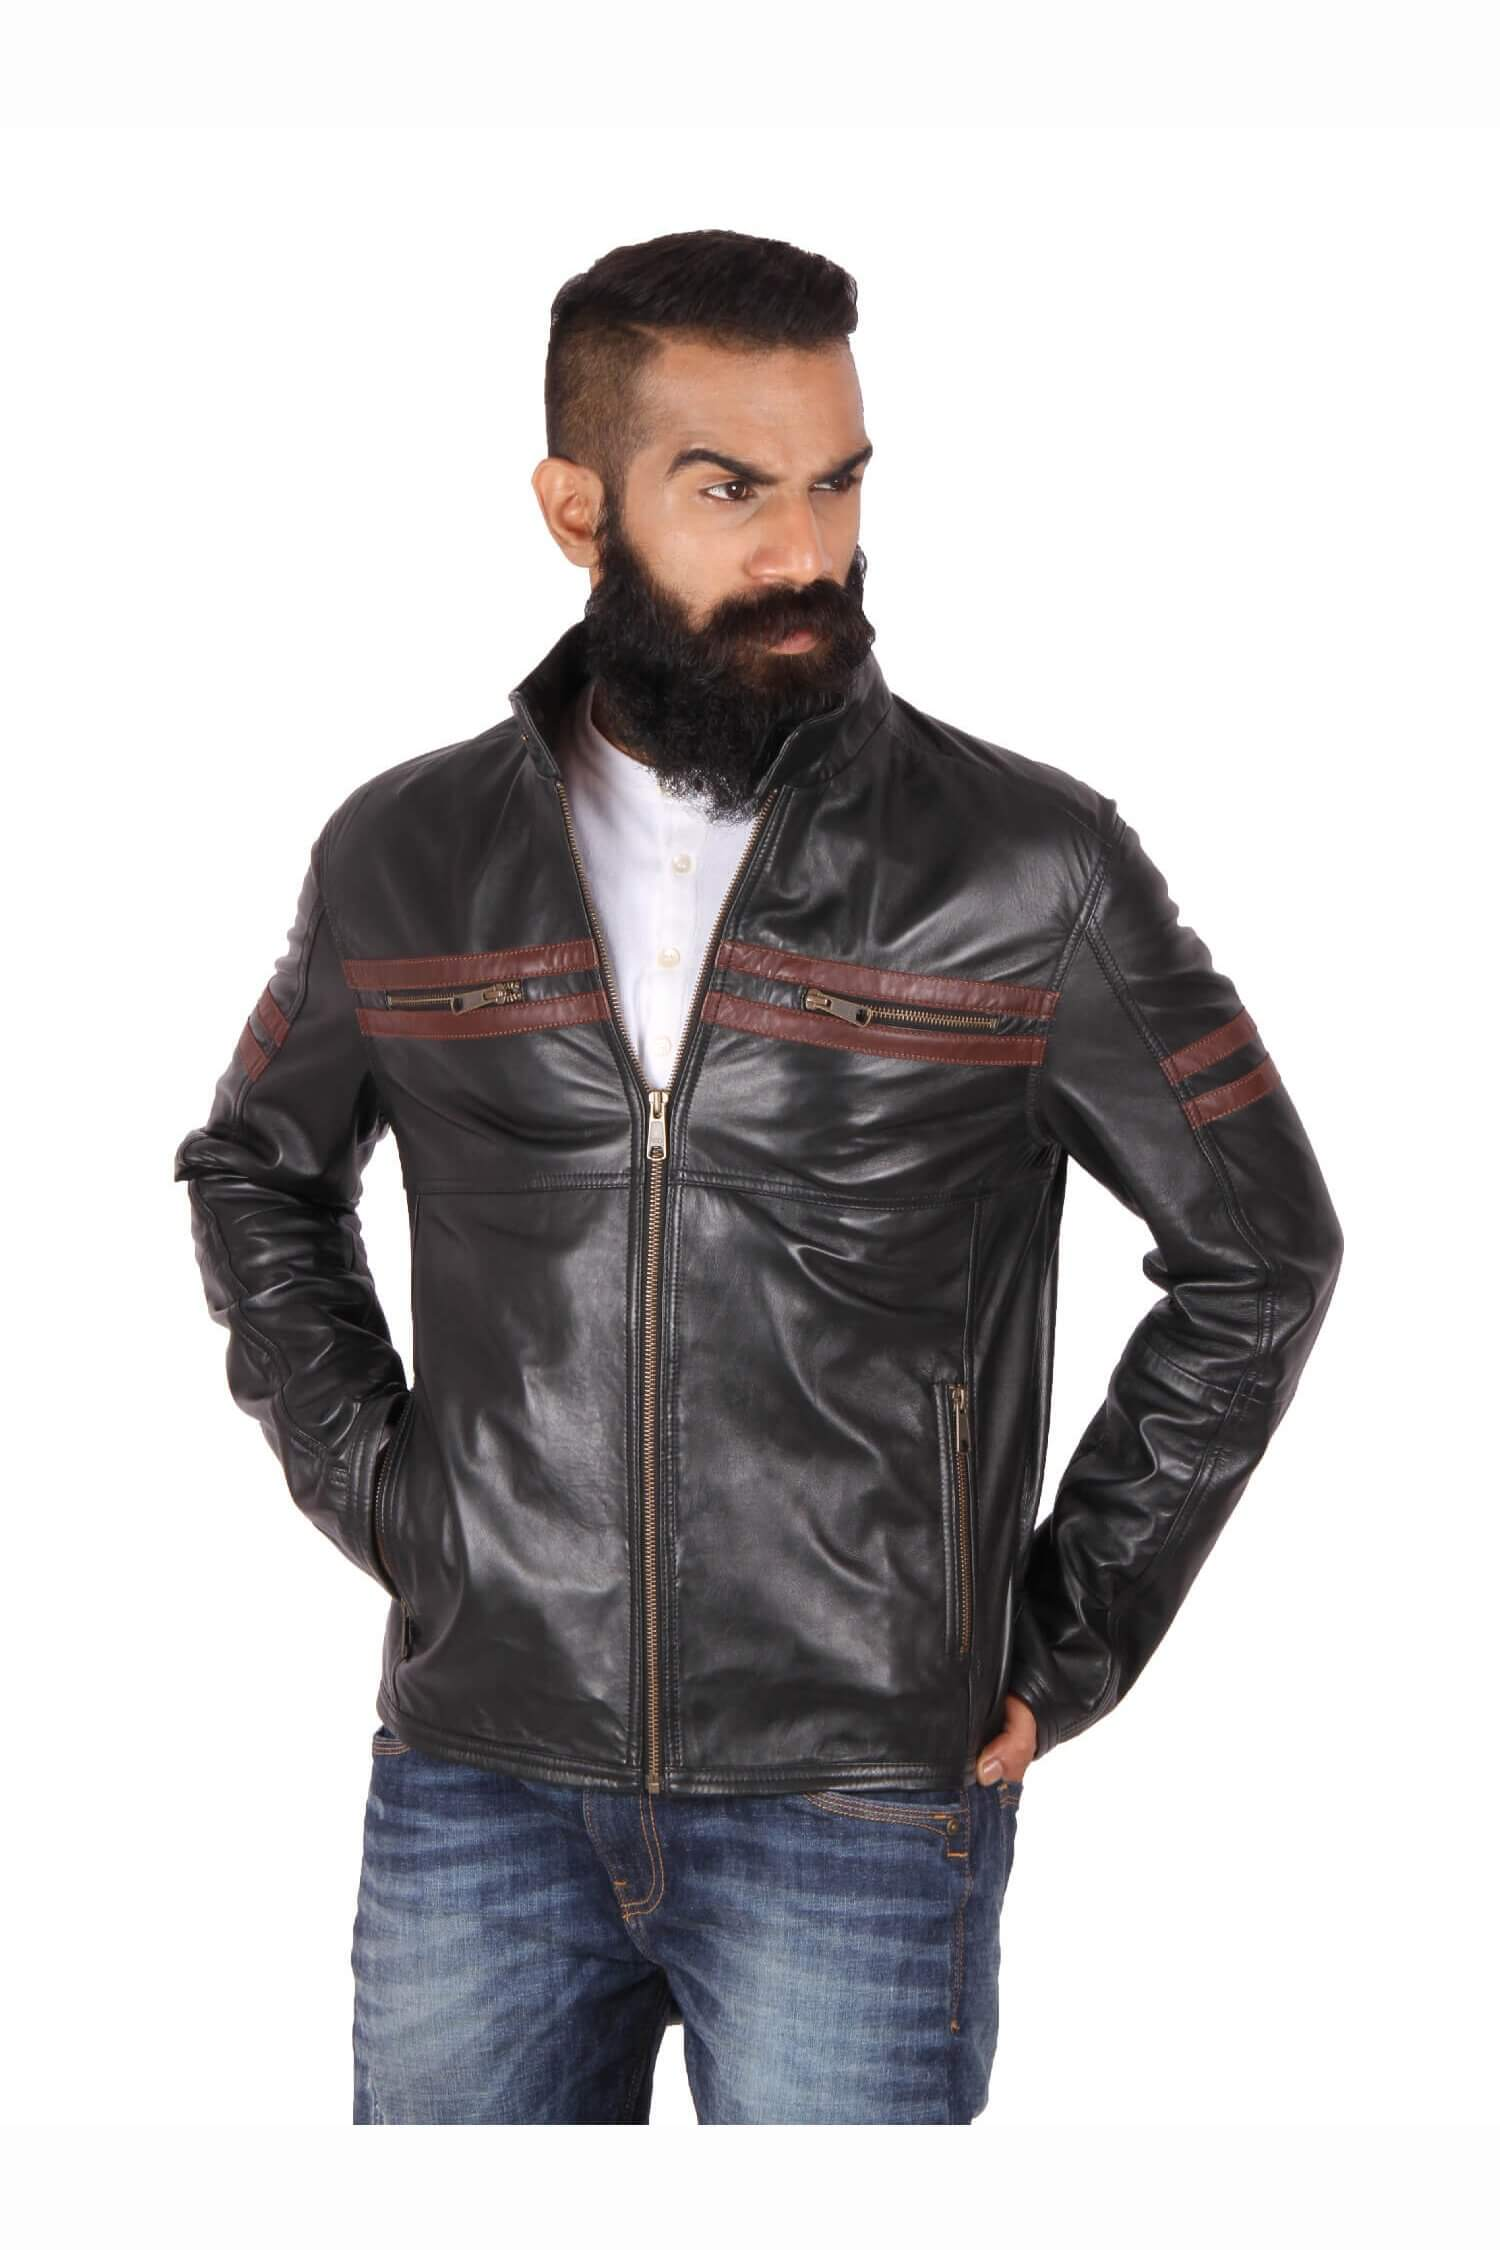 Theo&ampAsh - Buy genuine leather jackets online designer leather